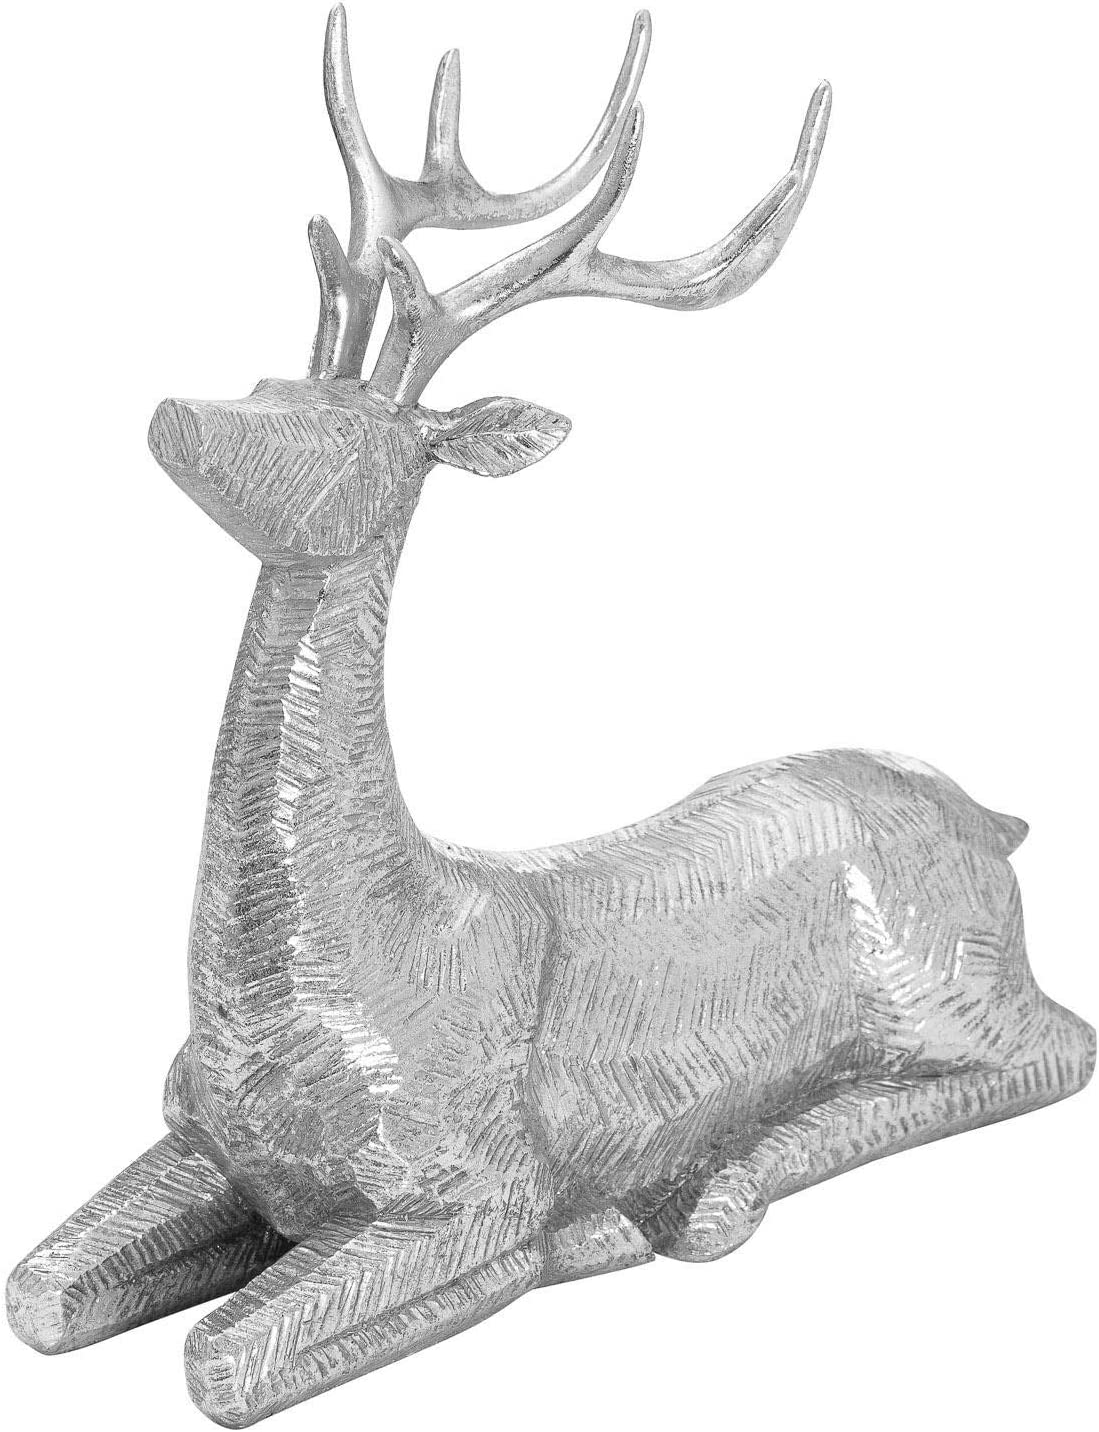 Hill 1975 Decorative Wood Effect Sitting Deer, One Size, Mixed